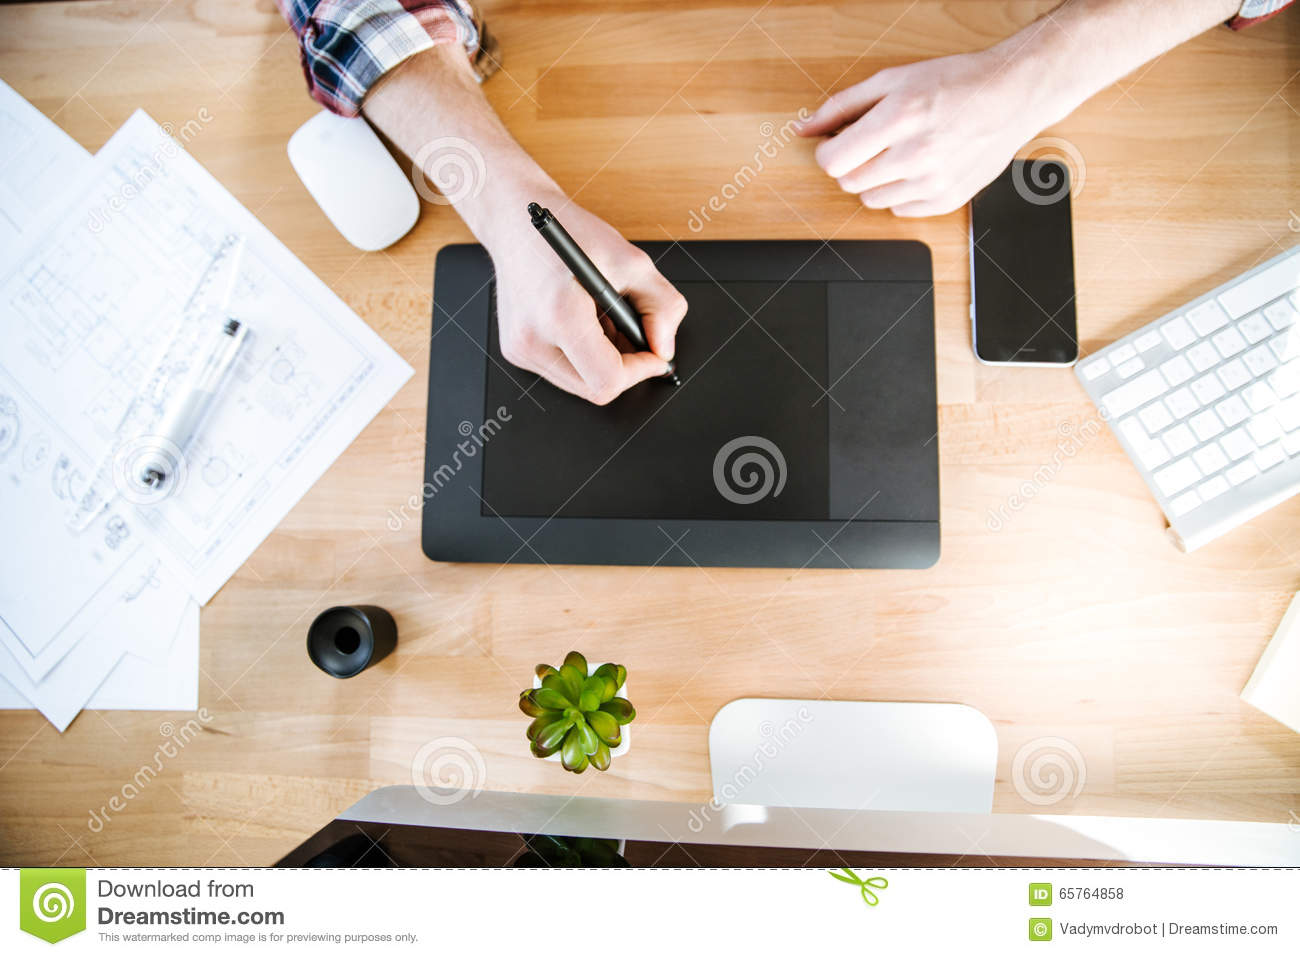 Table of graphic designer using pen tablet with stylus for Table graphic design